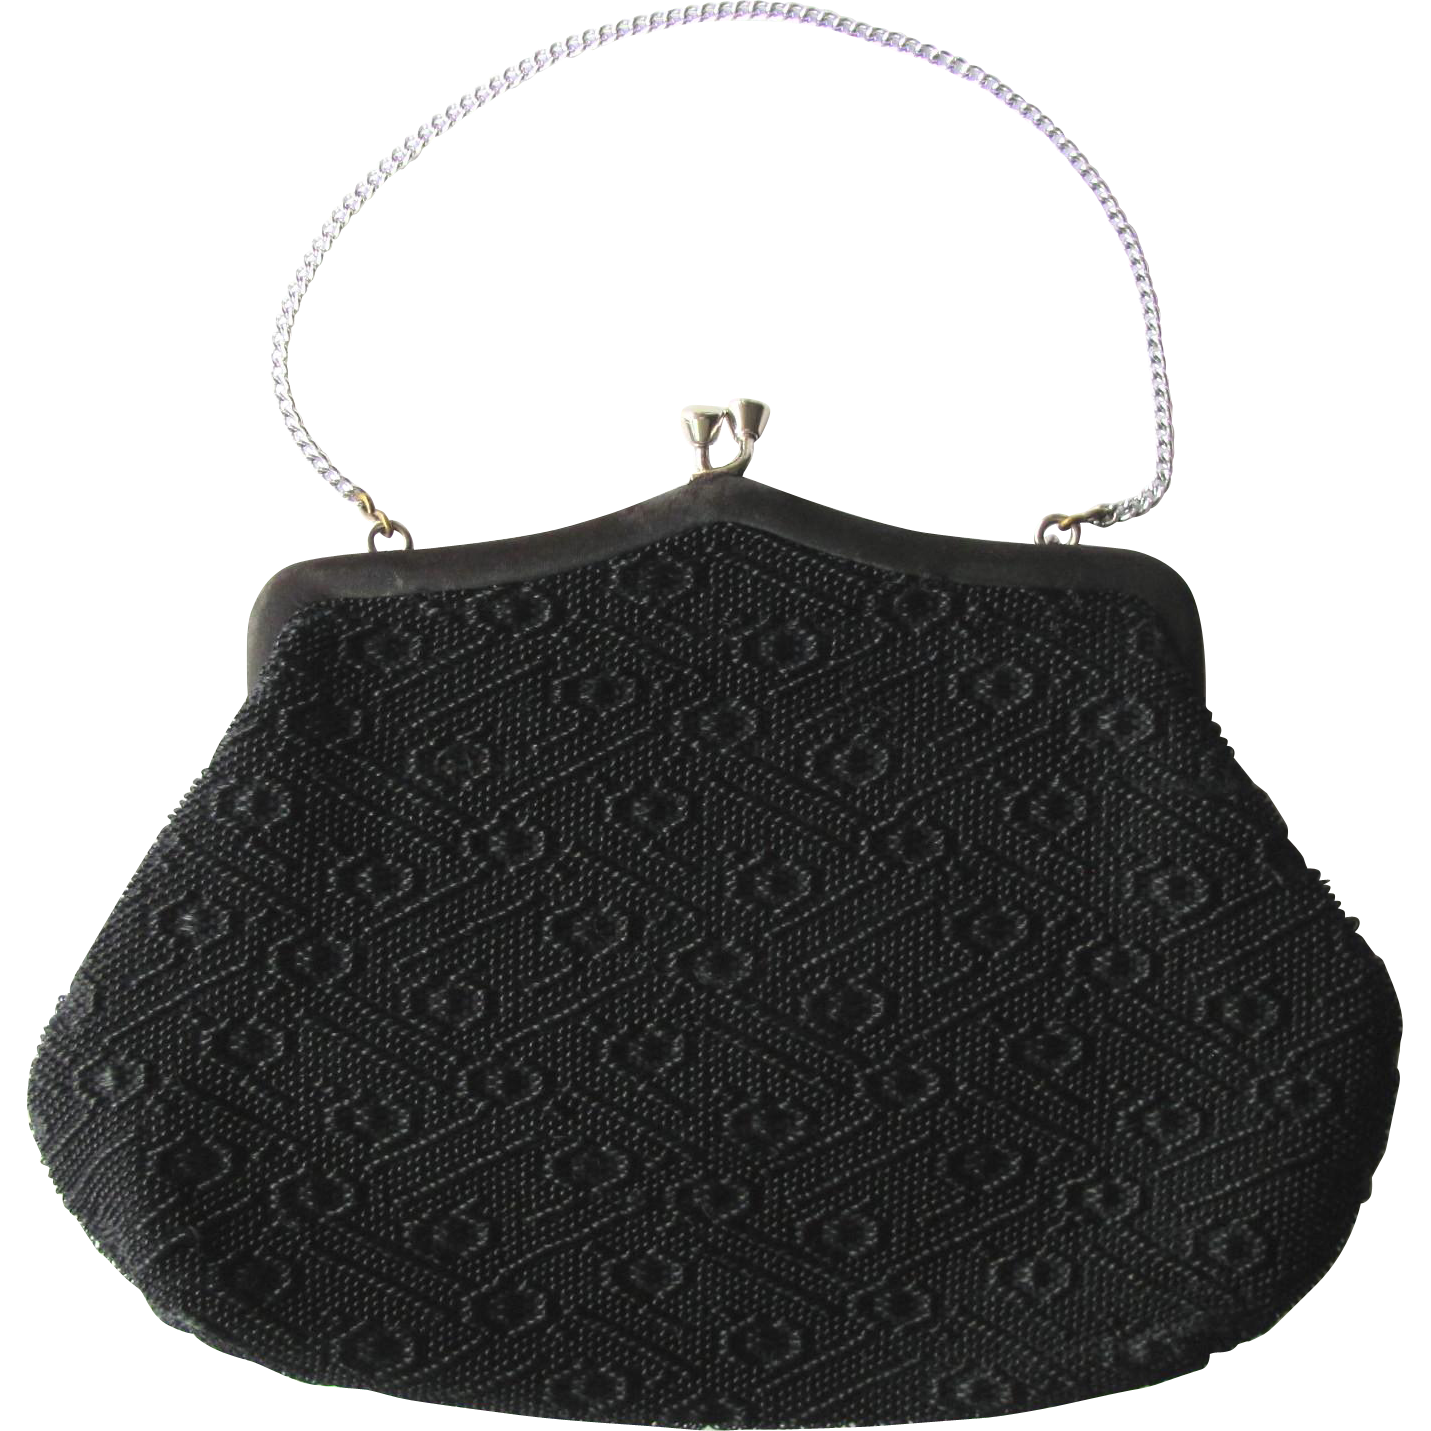 Pin On Antique And Vintage Purses